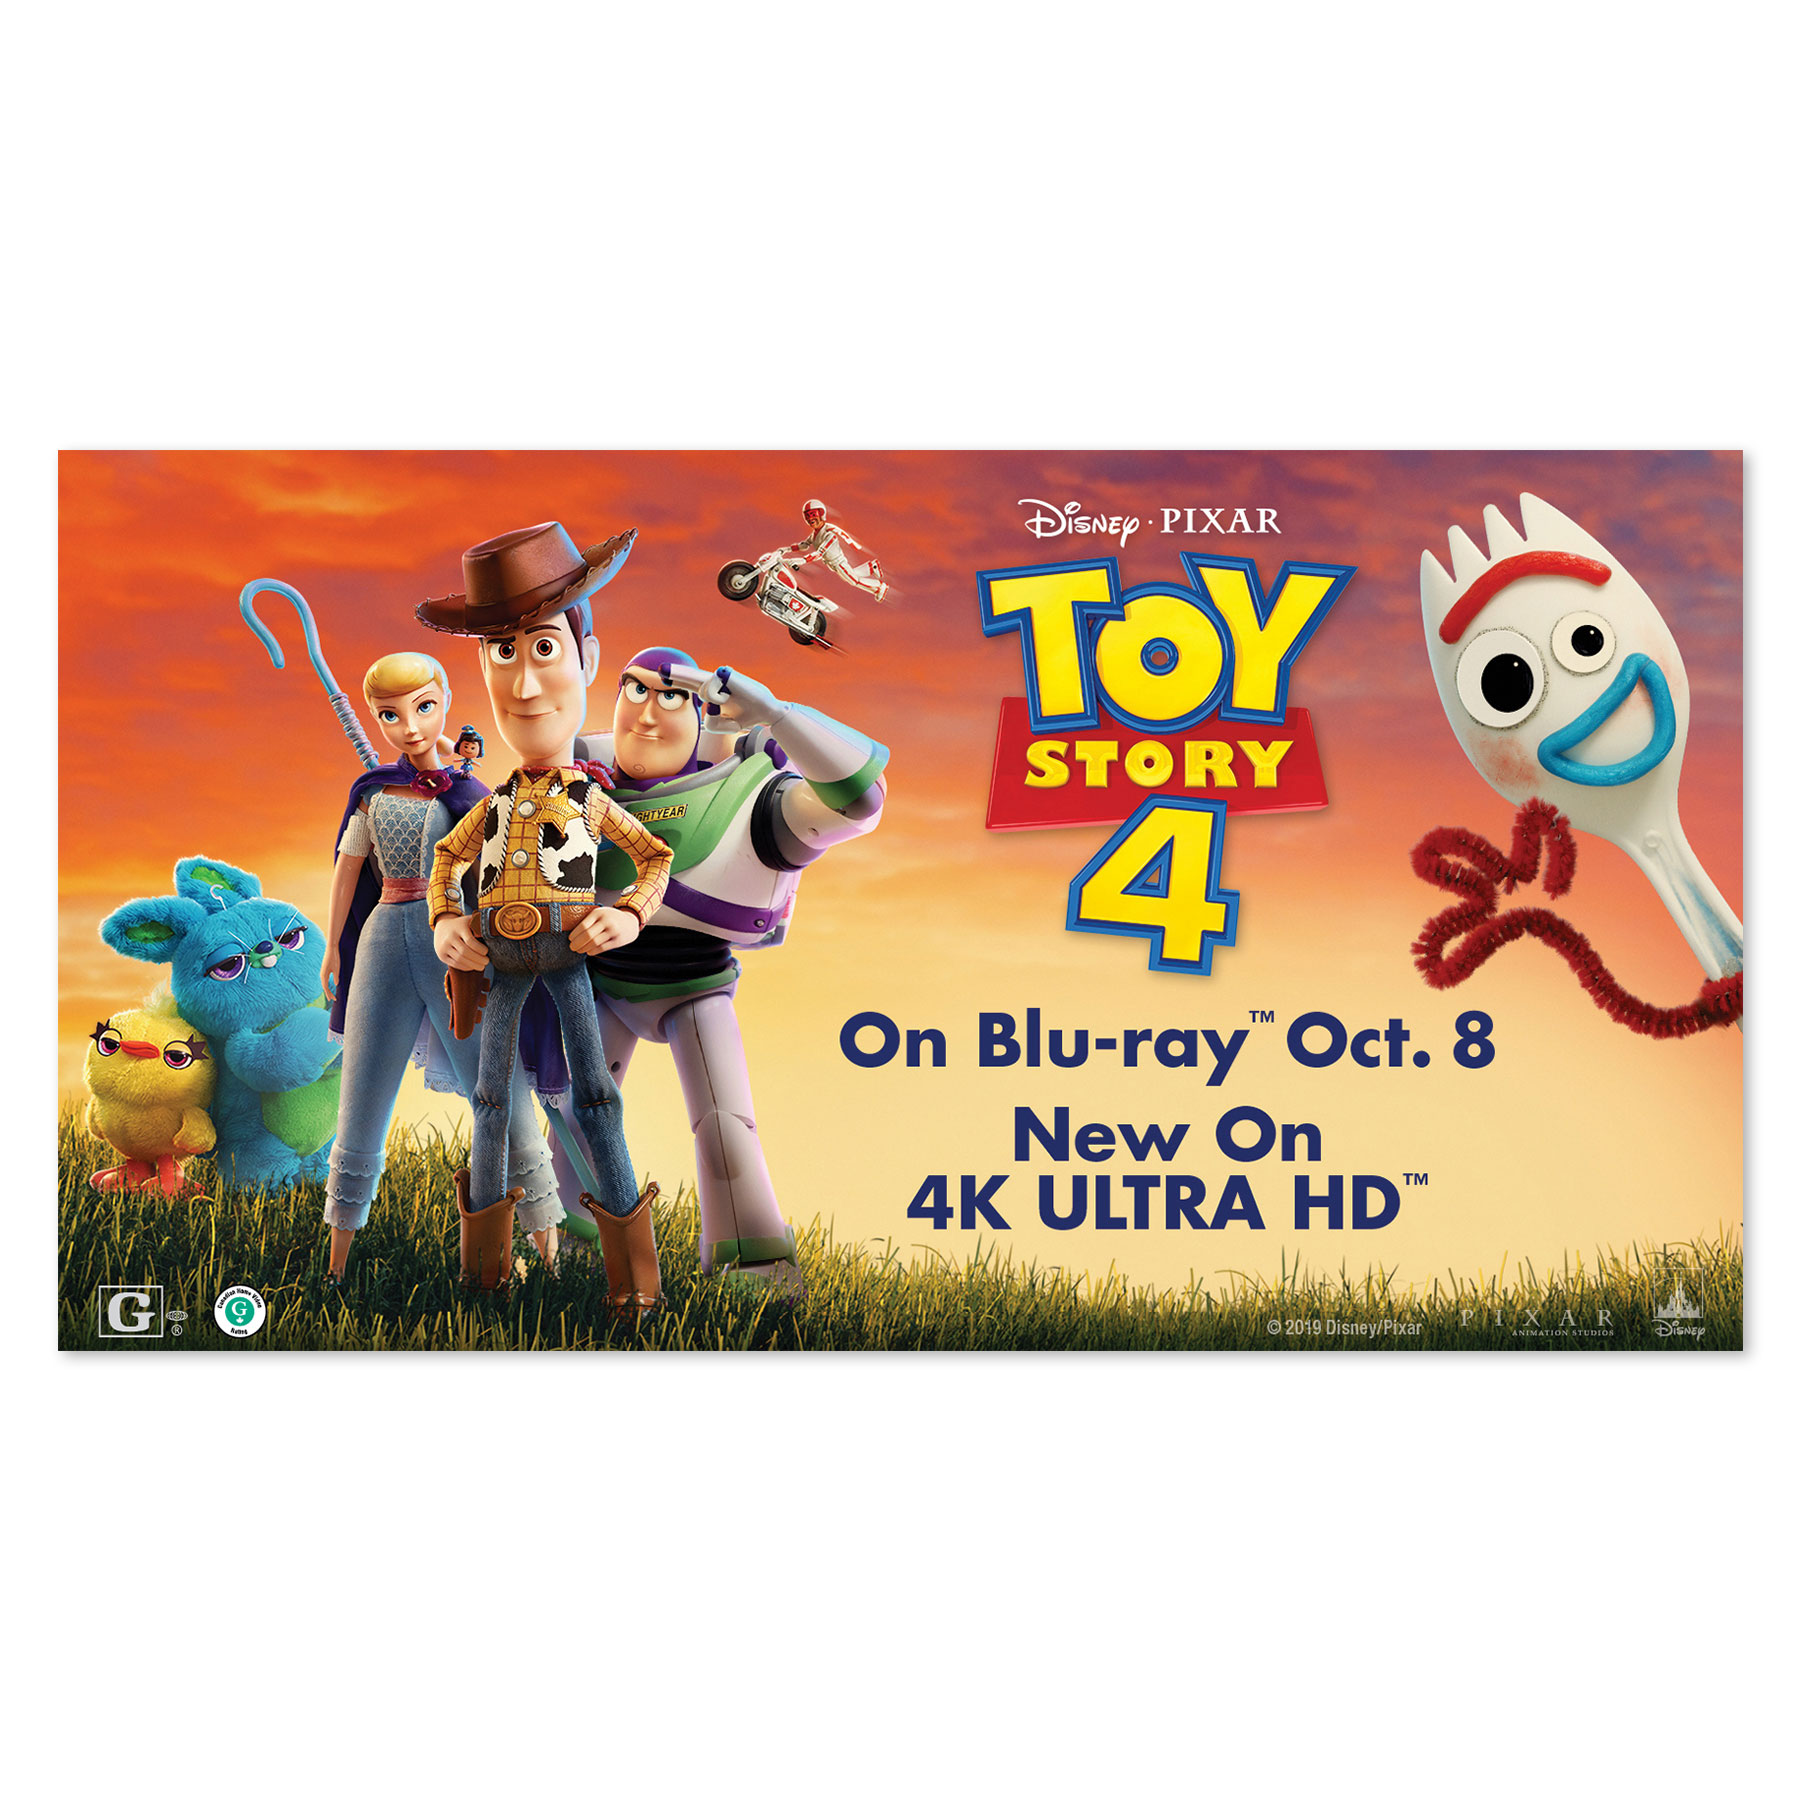 Toy Story TV Screen